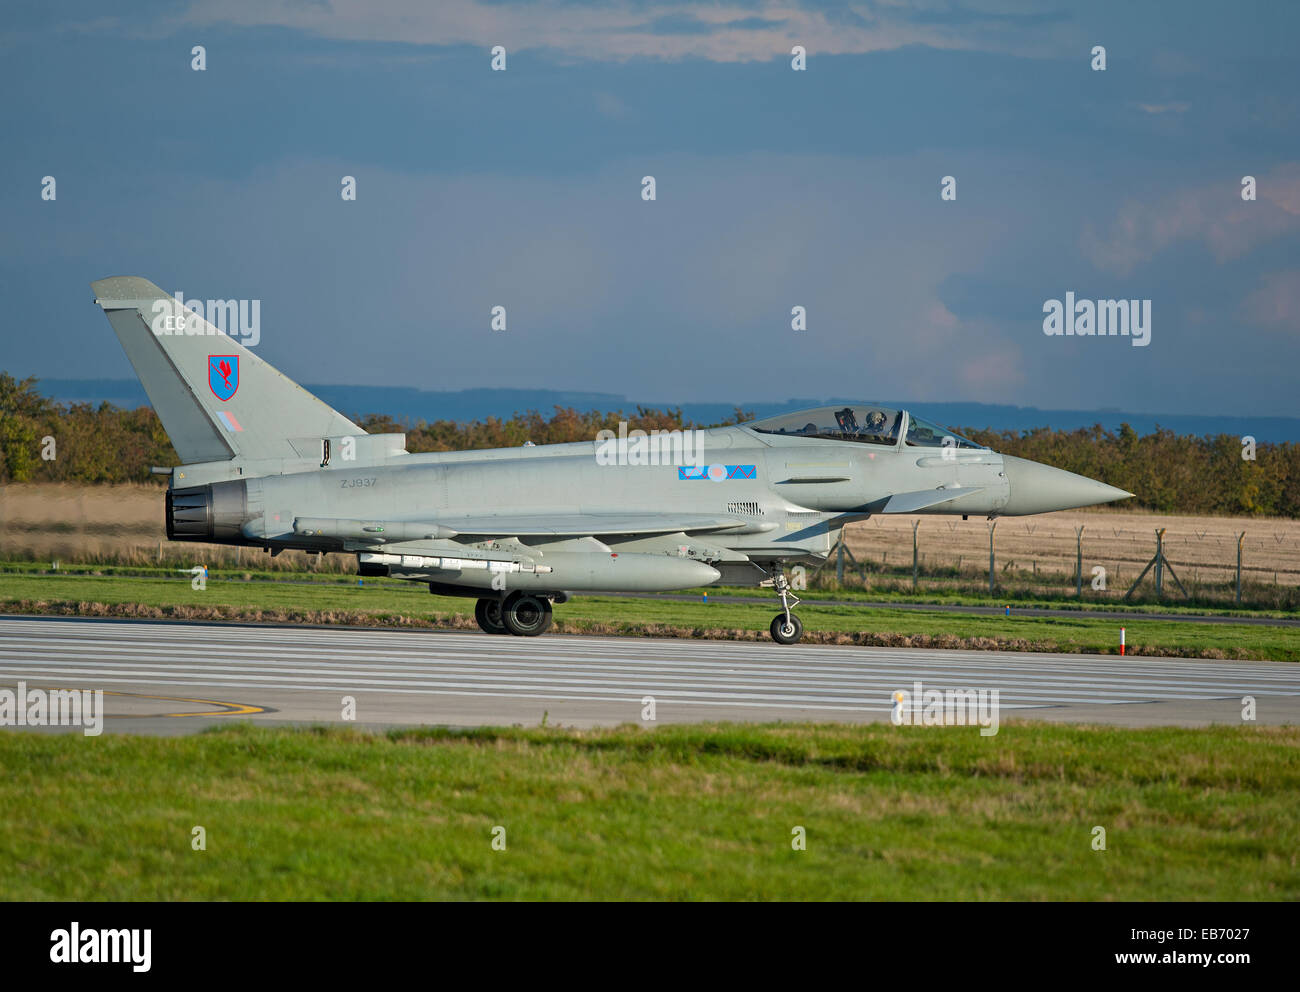 No 6 Sqn Eurofighter Typhoon EG ZJ937 jet fighter based at RAF Lossiemouth, Morayshire, Grampian Scotland.   SCO - Stock Image